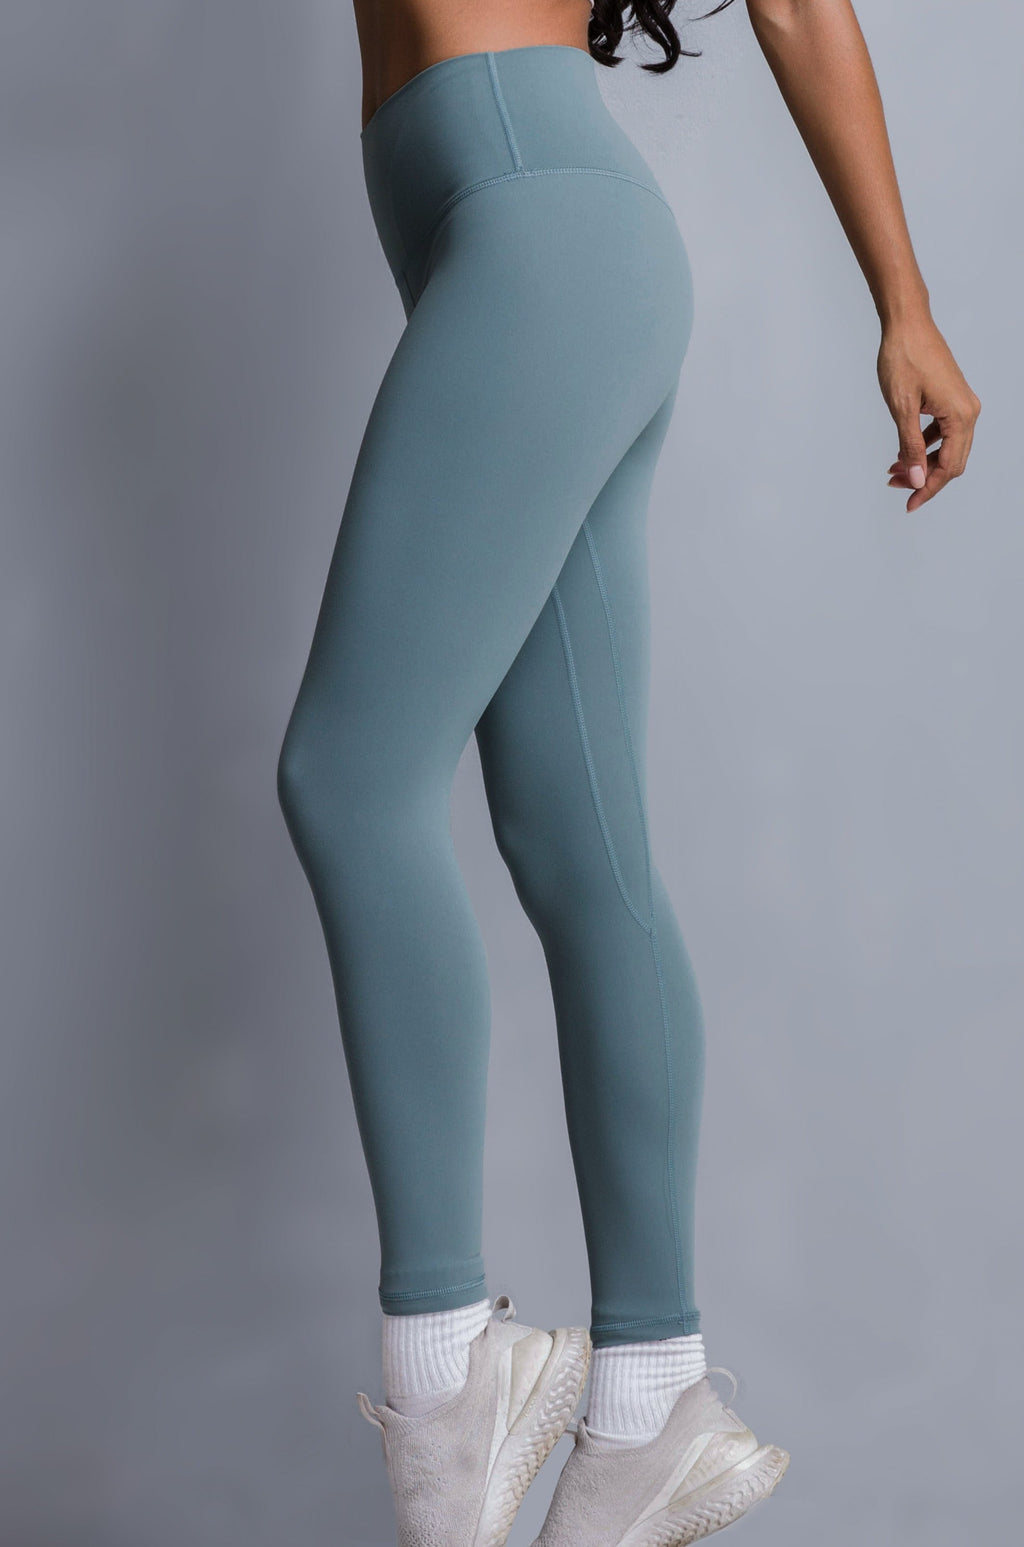 EVERYDAY LEGGINGS - MUTED TEAL